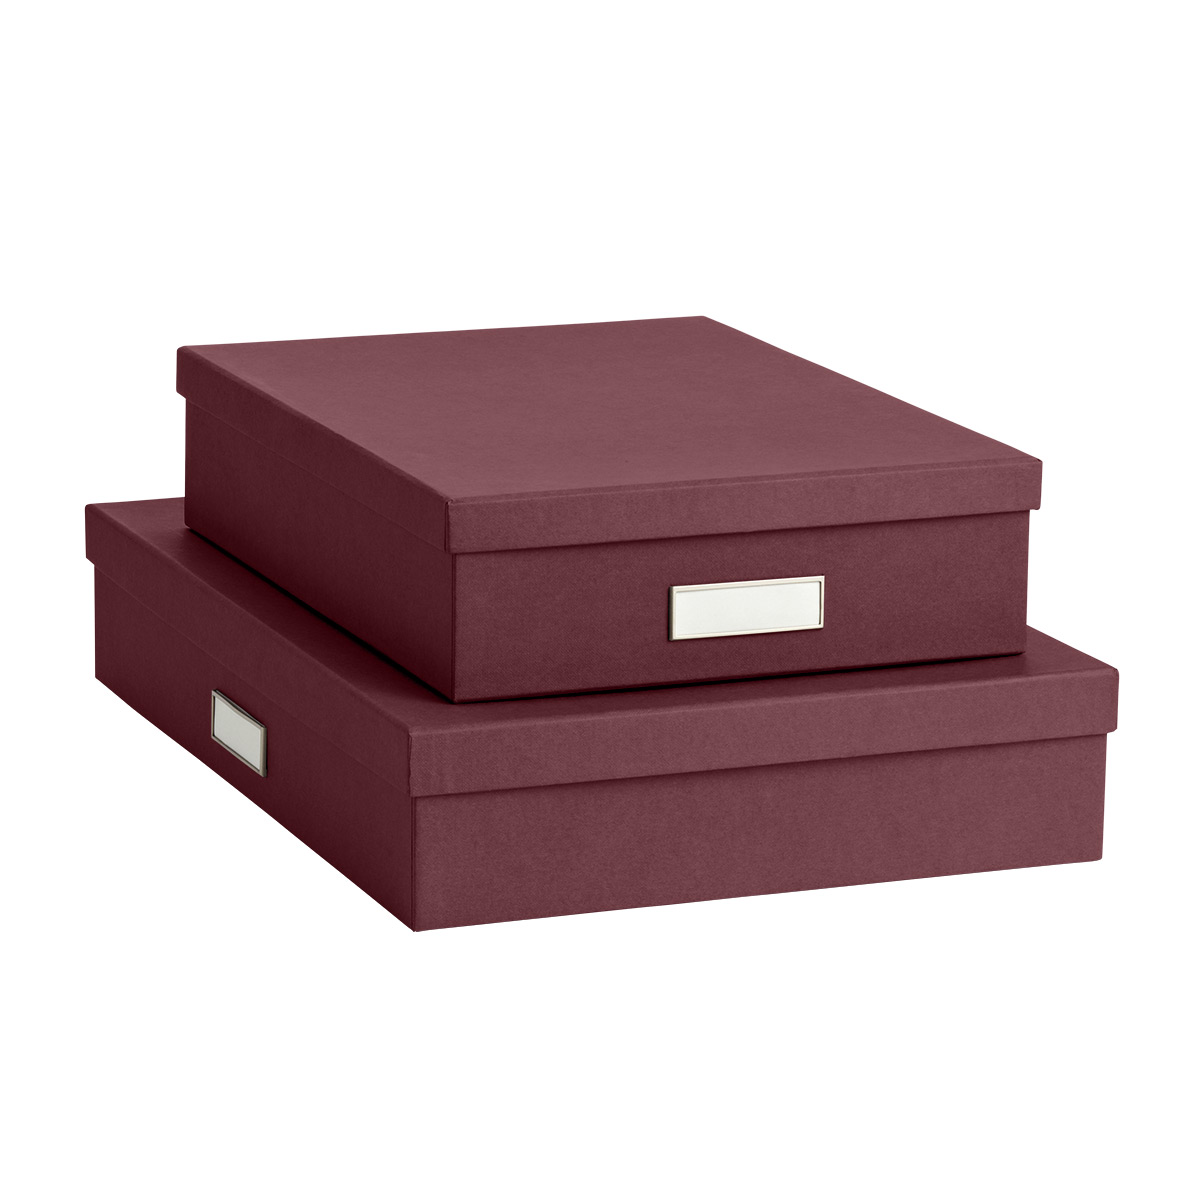 Bigso Bordeaux Red Stockholm Office Storage Boxes